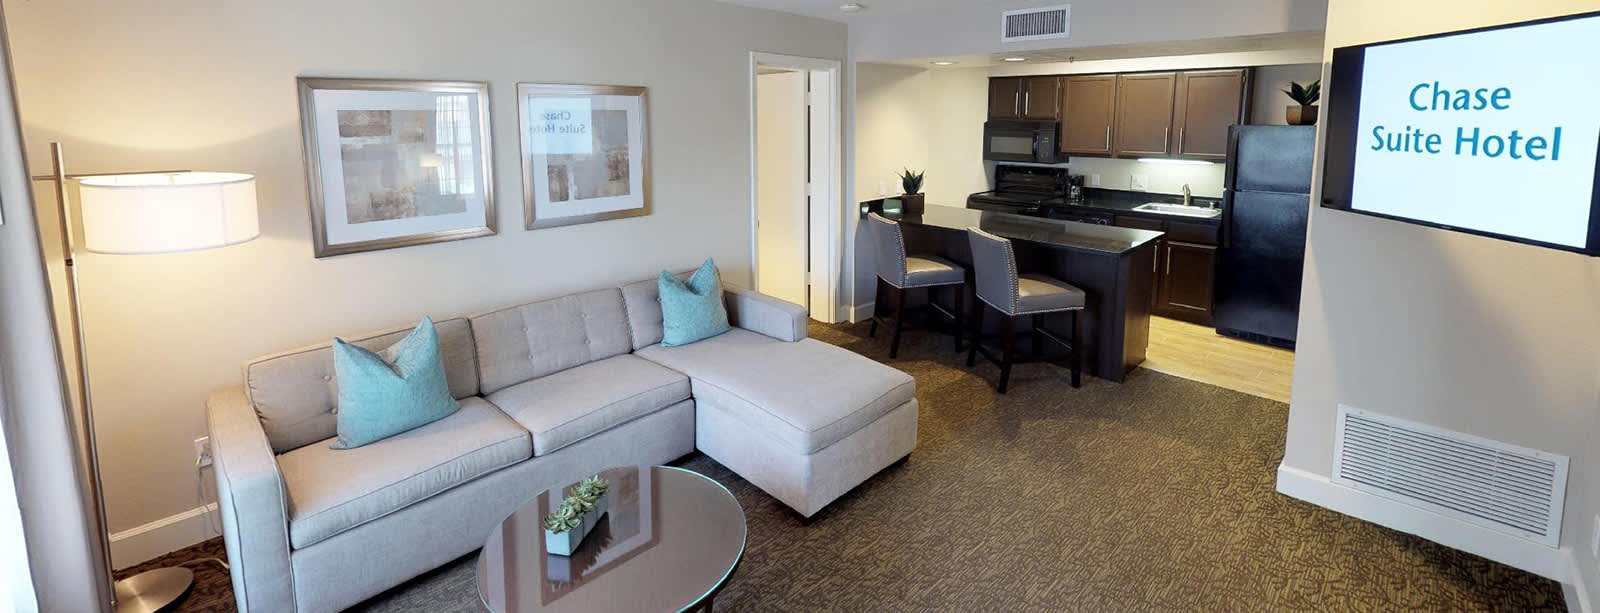 Featured Special in Chase Suite Hotel Brea